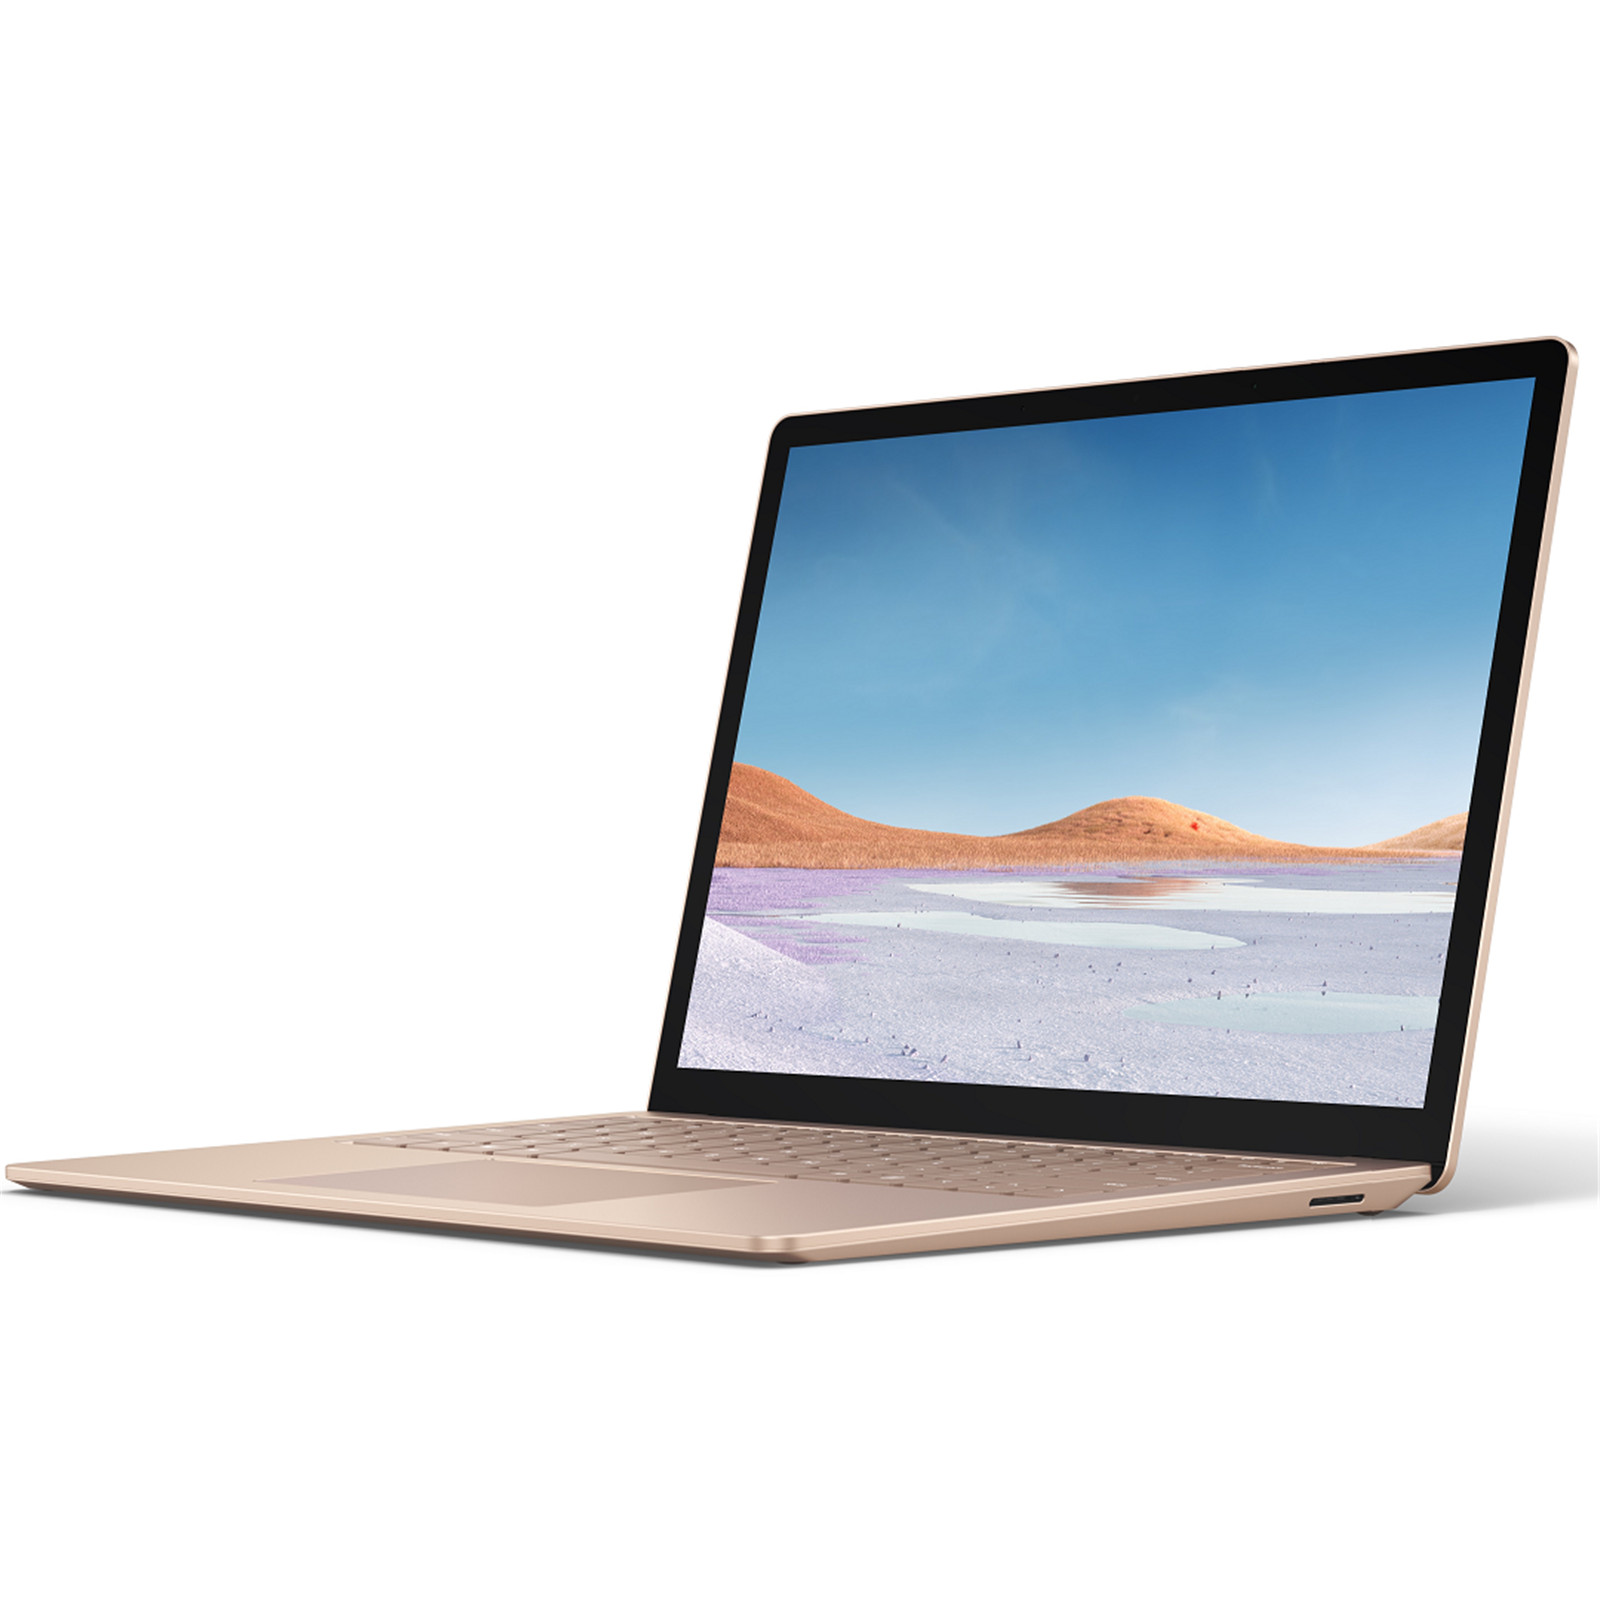 Microsoft Surface Laptop 3 13.5 Inch i5-1035G7 3.70GHz 8GB RAM 256GB SSD Touchscreen Laptop with Windows 10 Pro - Sandstone